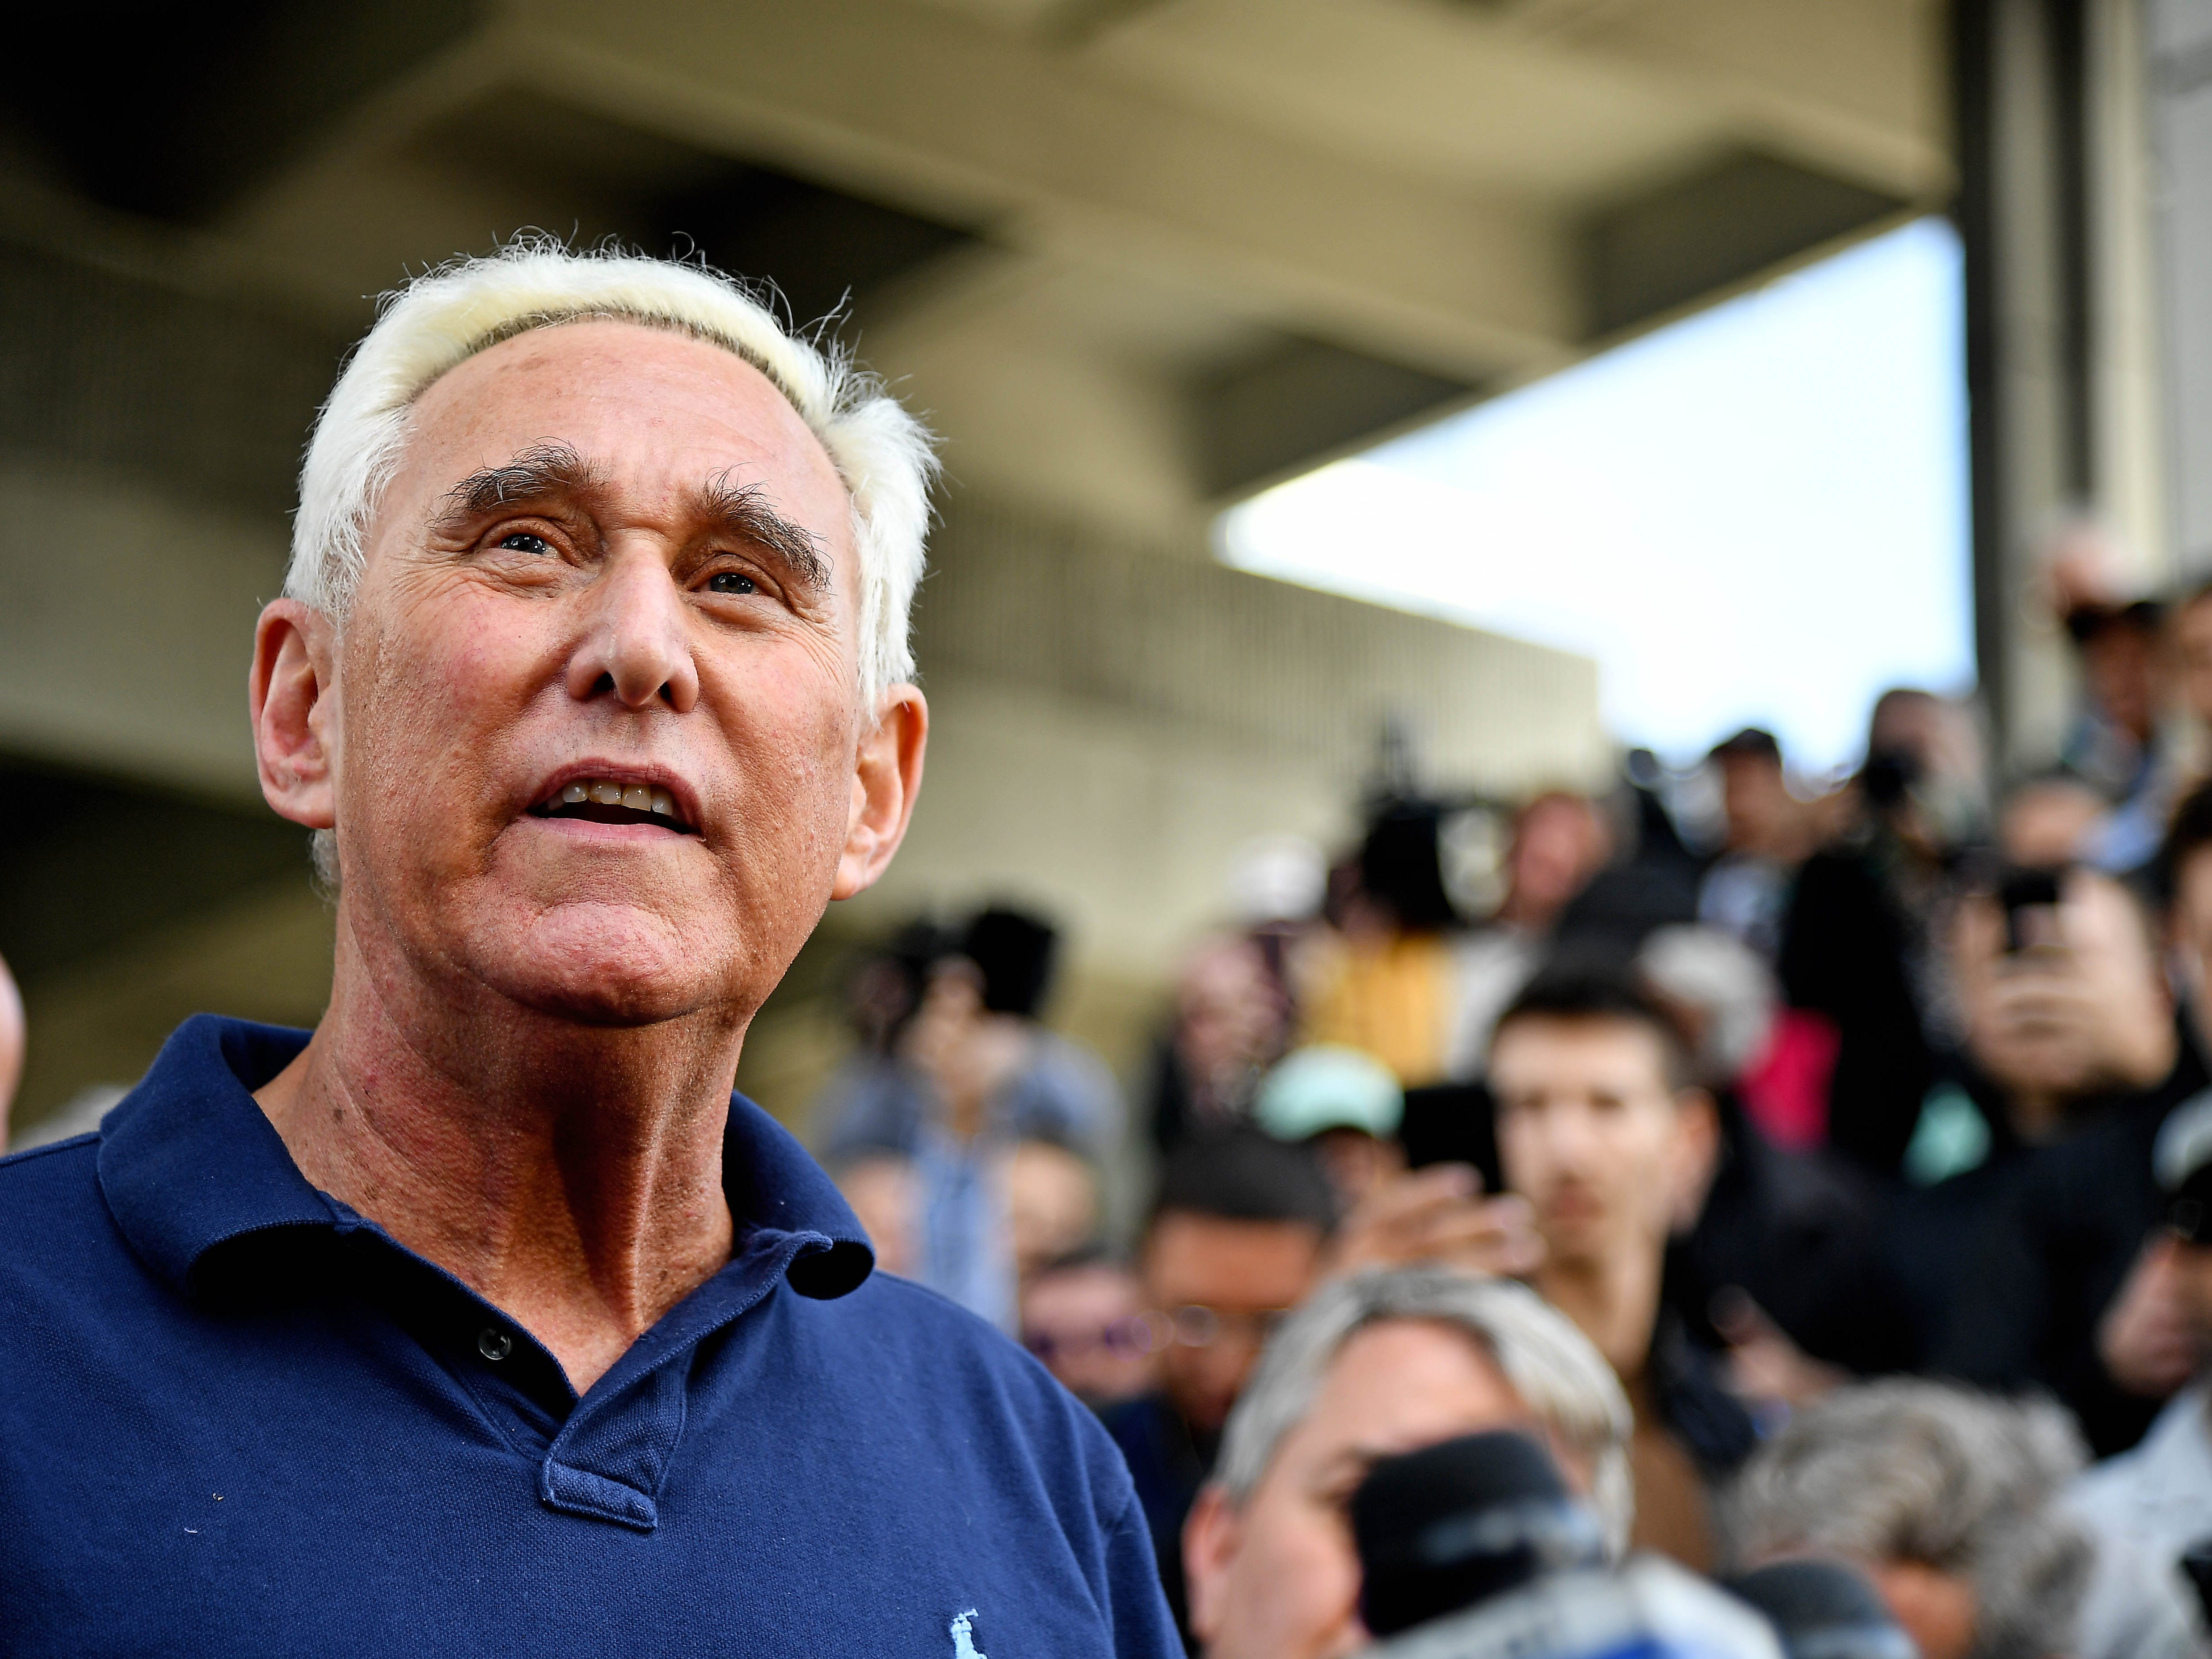 Jan 25, 2019; Fort Lauderdale, FL, USA; American political consultant Roger Stone speaks to the media after being arraigned on federal charges at U.S District Courthouse. Mandatory Credit: Jasen Vinlove-USA TODAY Sports ORG XMIT: USATSI-400975 ORIG FILE ID:  20190125_jfv_bv1_027.jpg